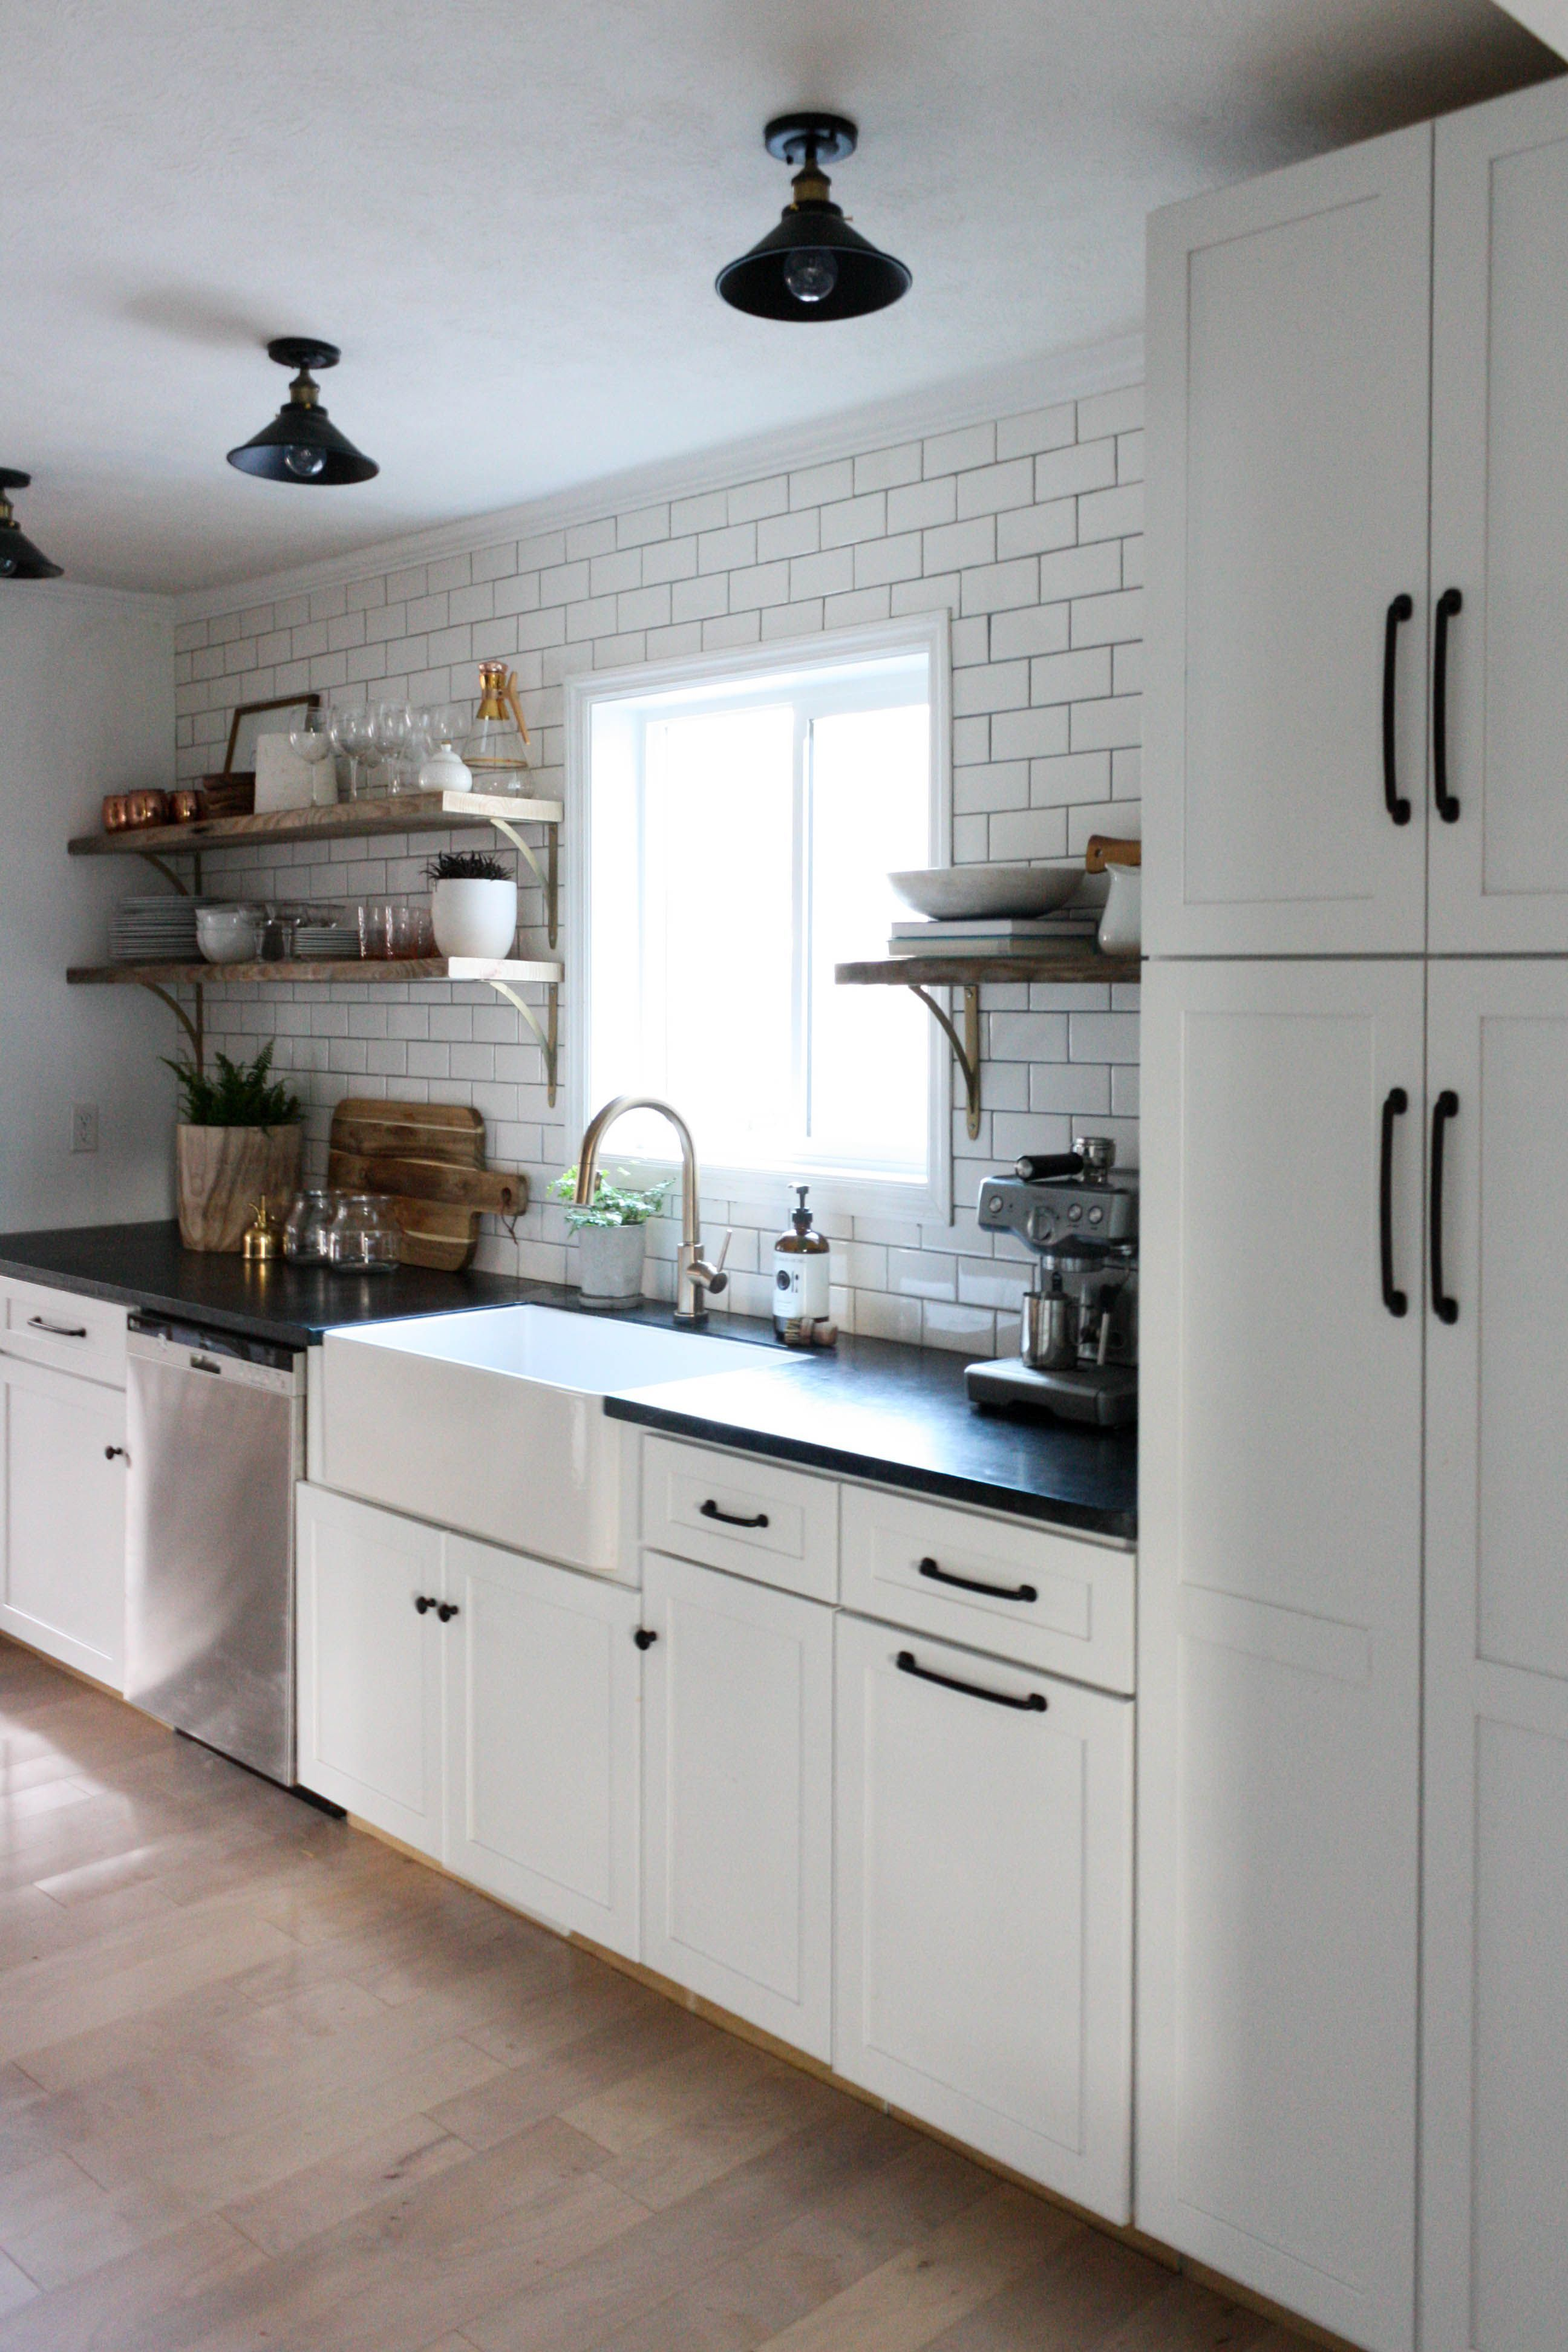 Two Tone Kitchen in 2020 Black kitchen countertops